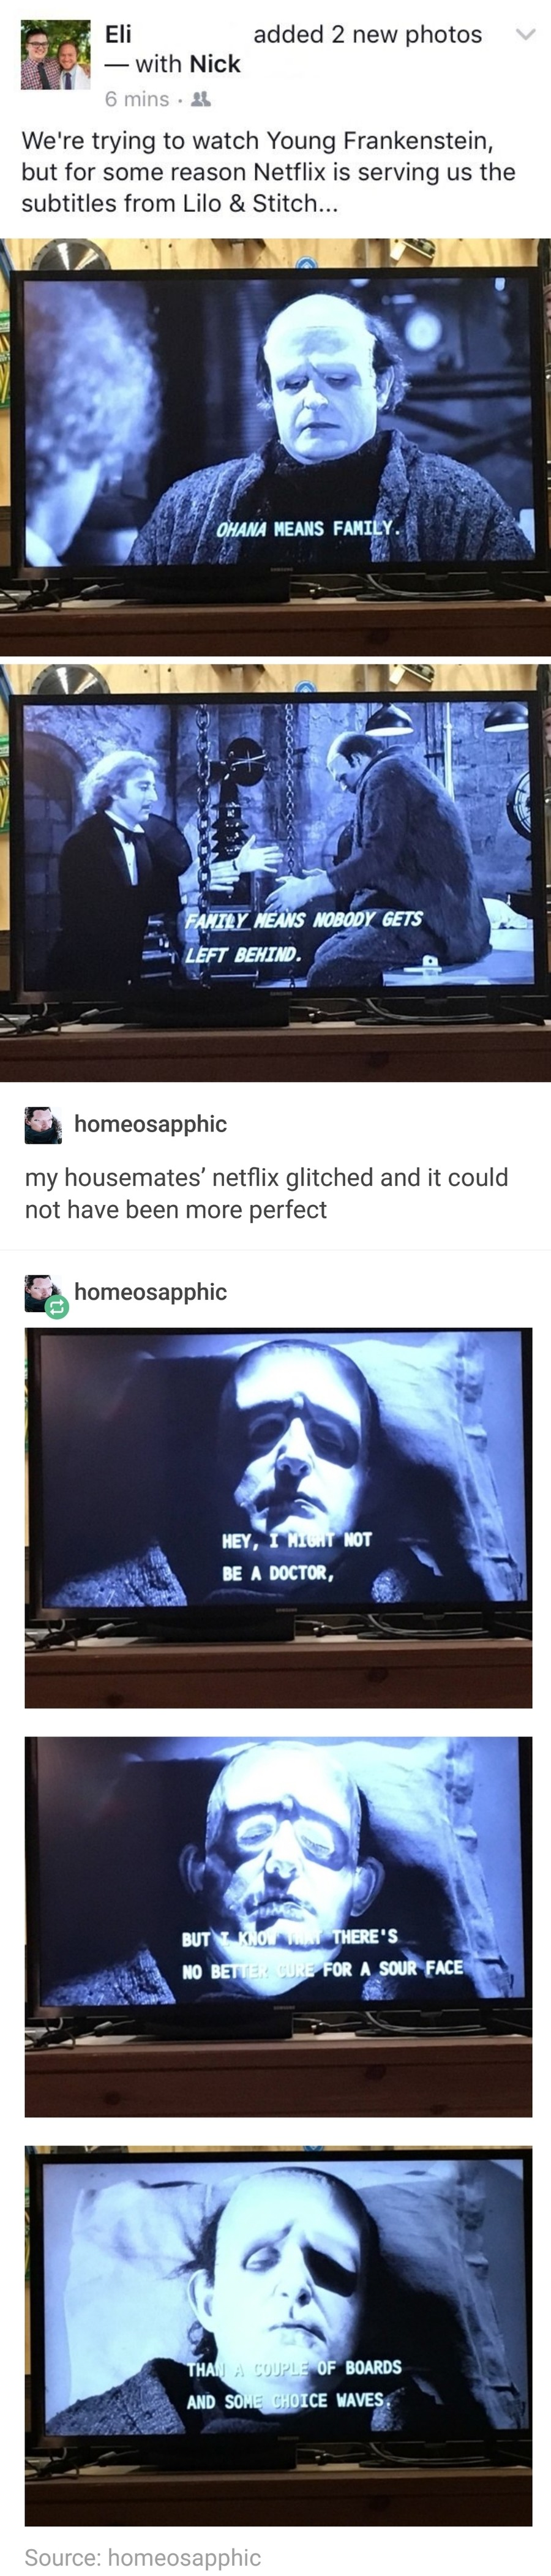 This just makes it better. . Eli added E new photos with Nick 6 ruins r w, We' re trying to watch Young Frankenstein, but for some reason Netflix is serving us